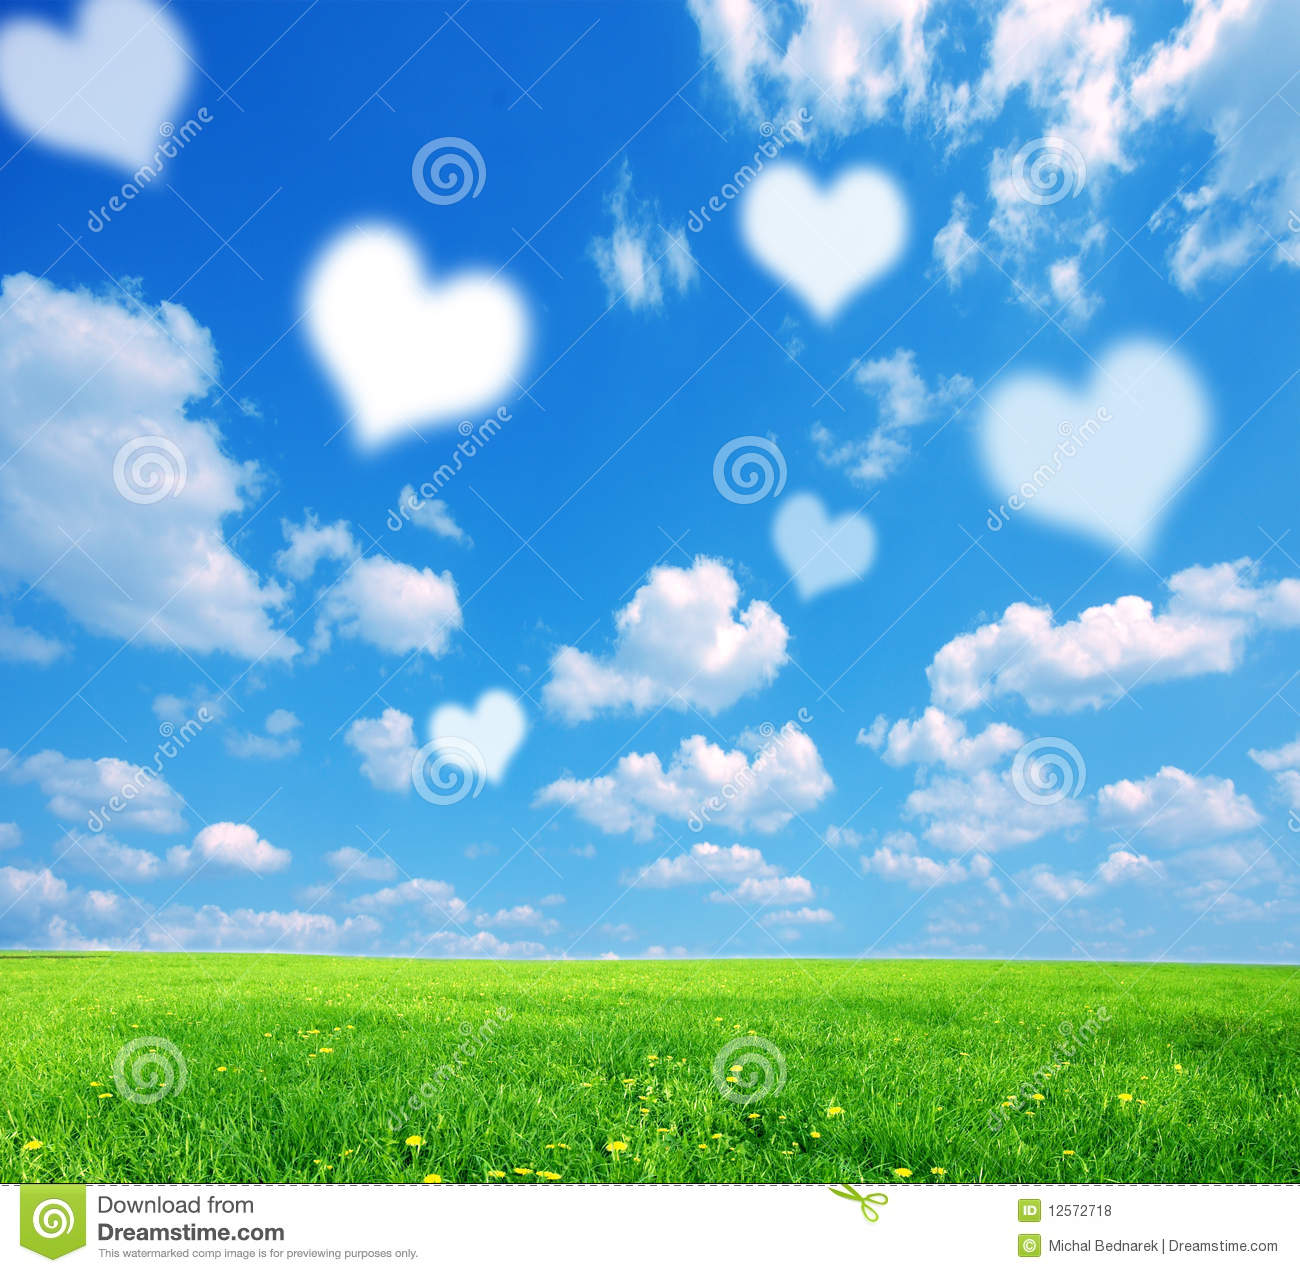 Love Nature Background Stock Photo Image Of Clean